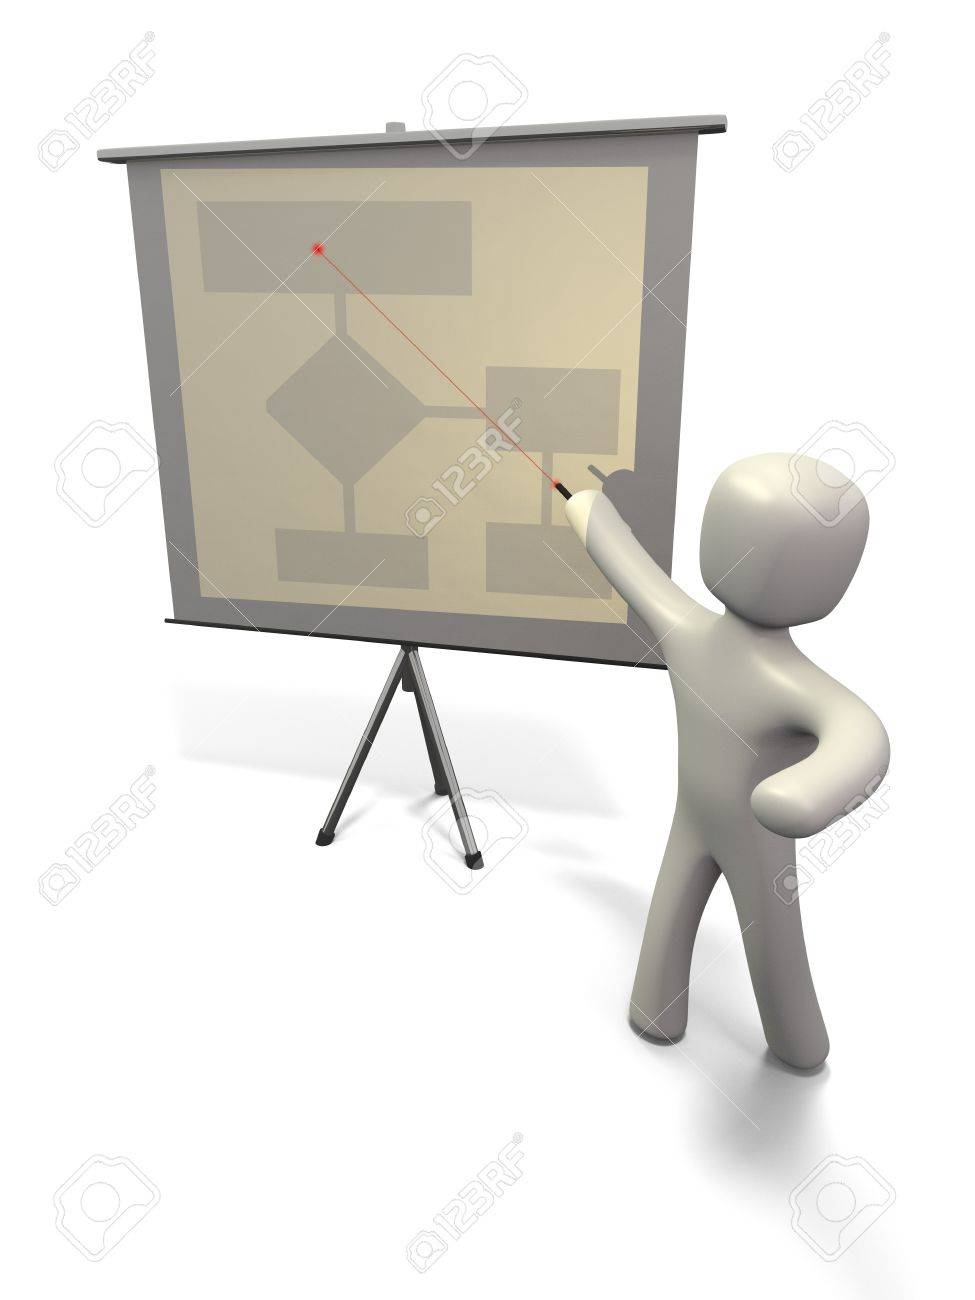 3d render of figure pointing to projection screen with red laser